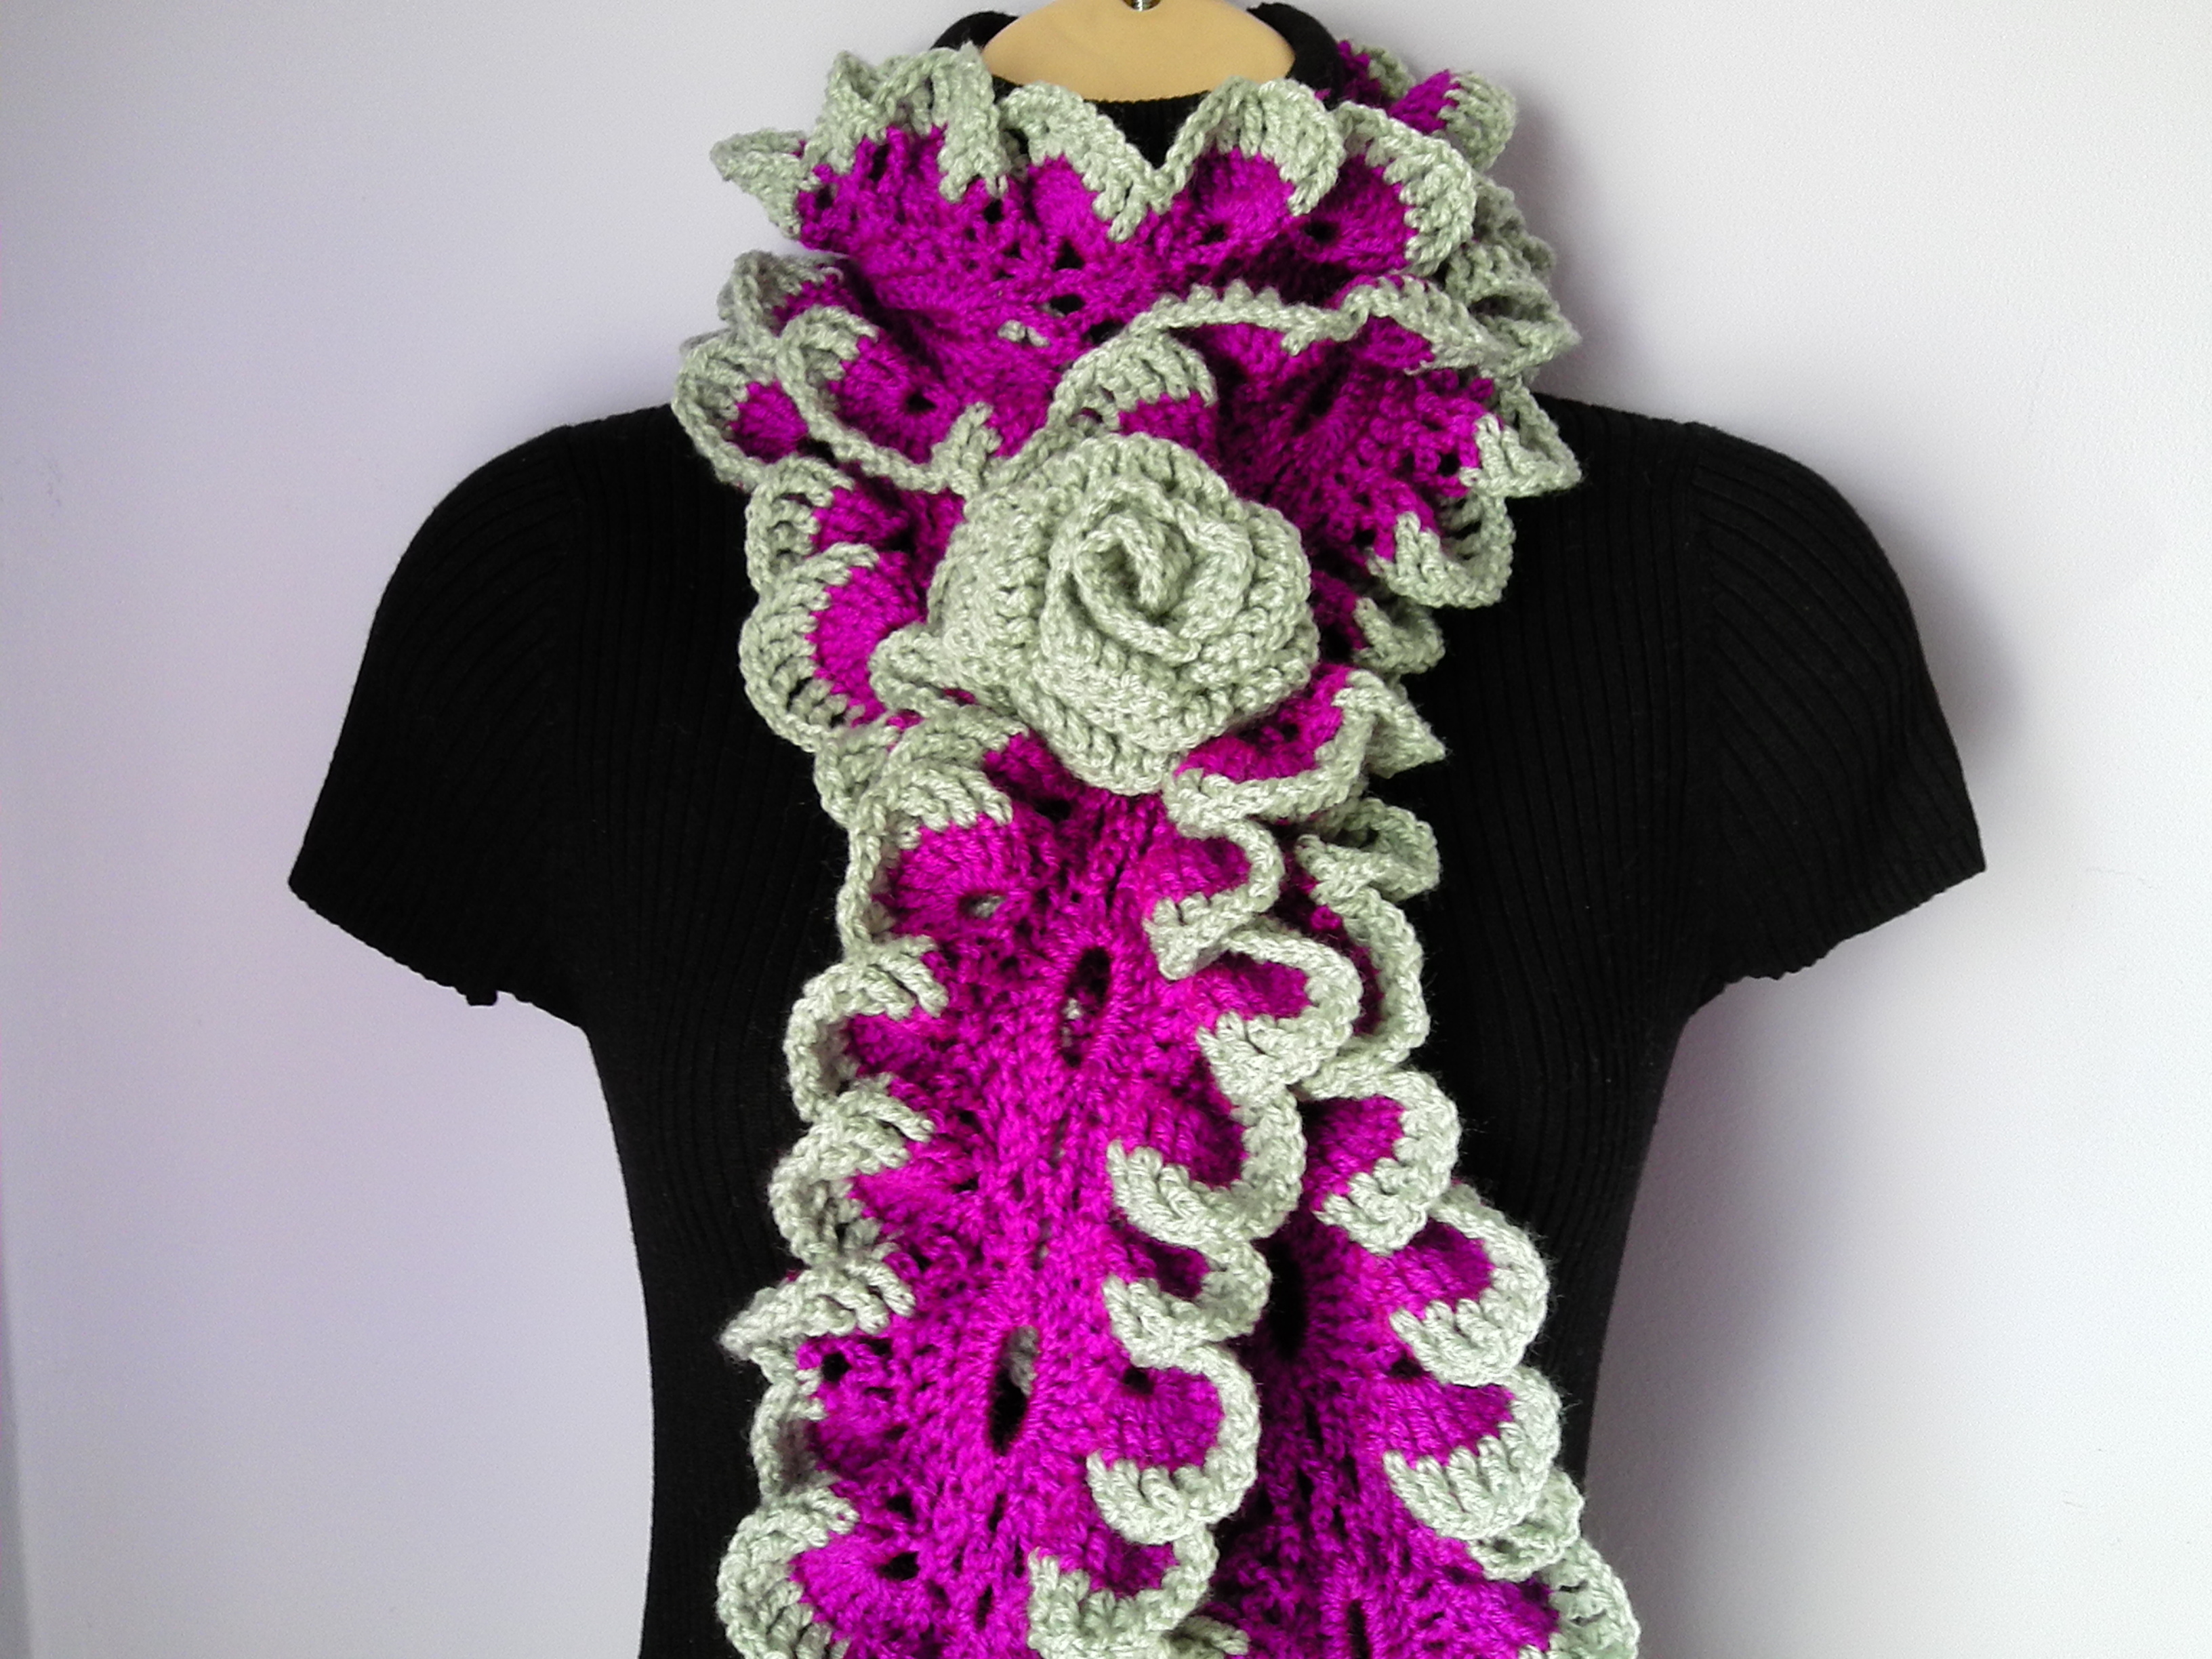 Tatjanaboutique Crochet Scarf With Flower Brooch Neckwarmer